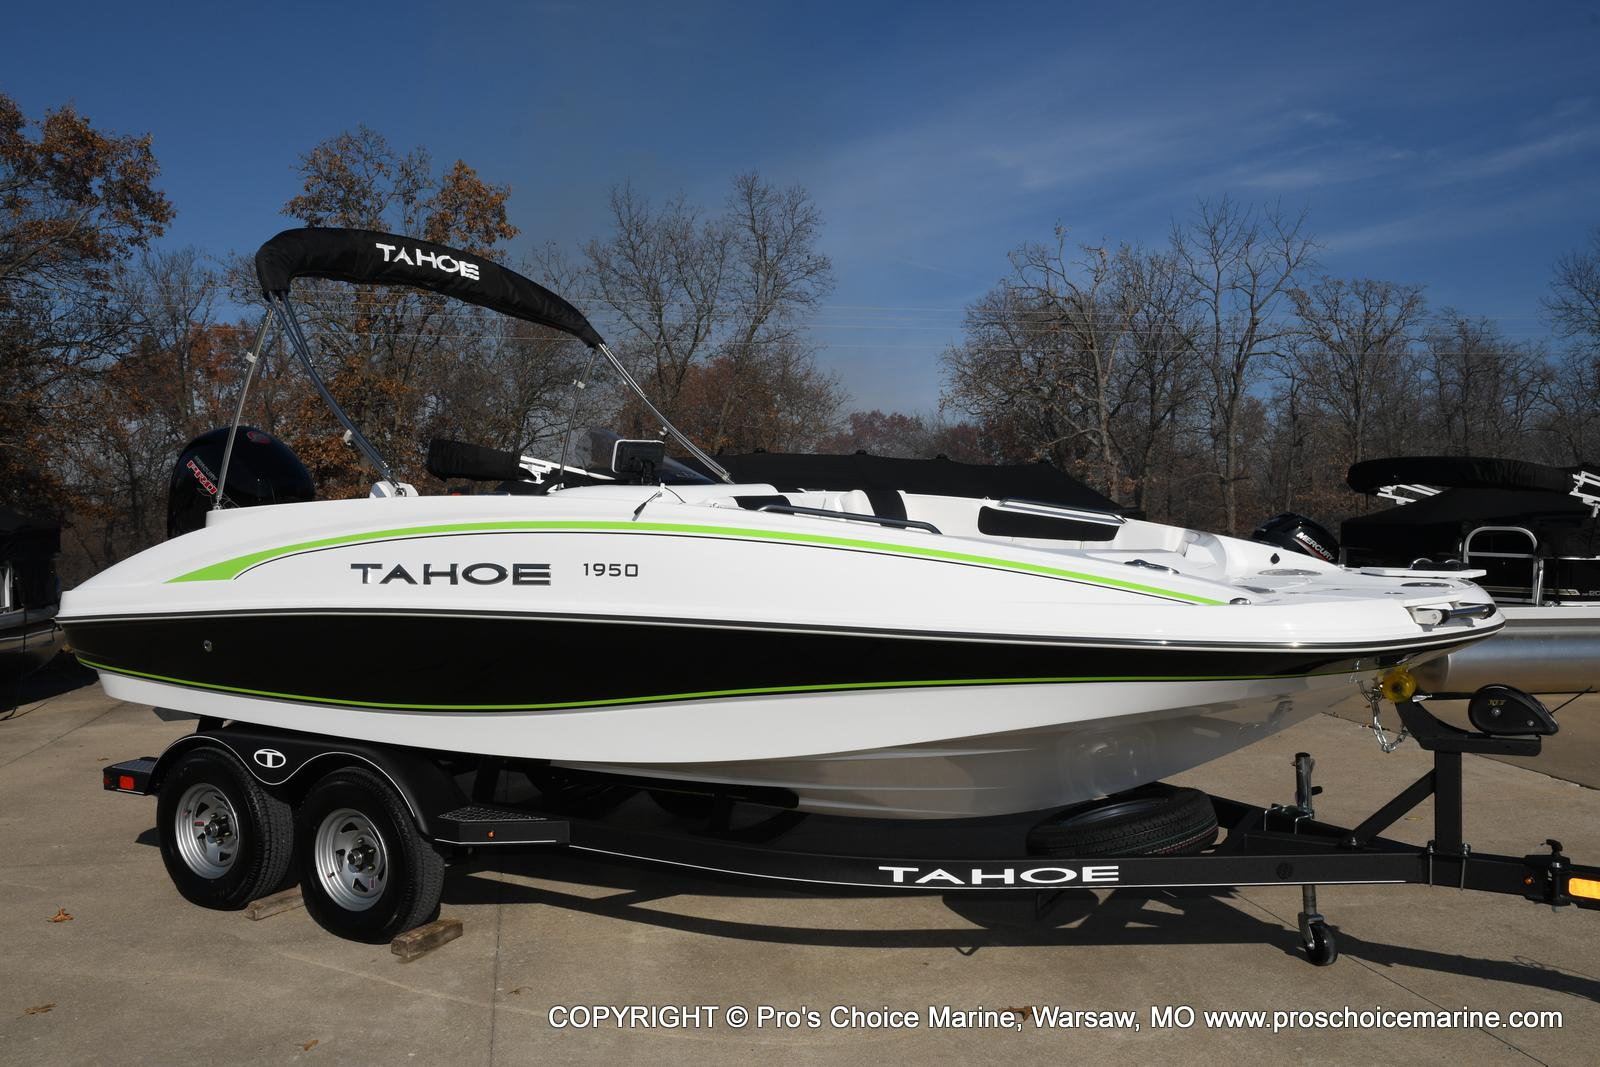 2020 Tahoe boat for sale, model of the boat is 1950 & Image # 26 of 50